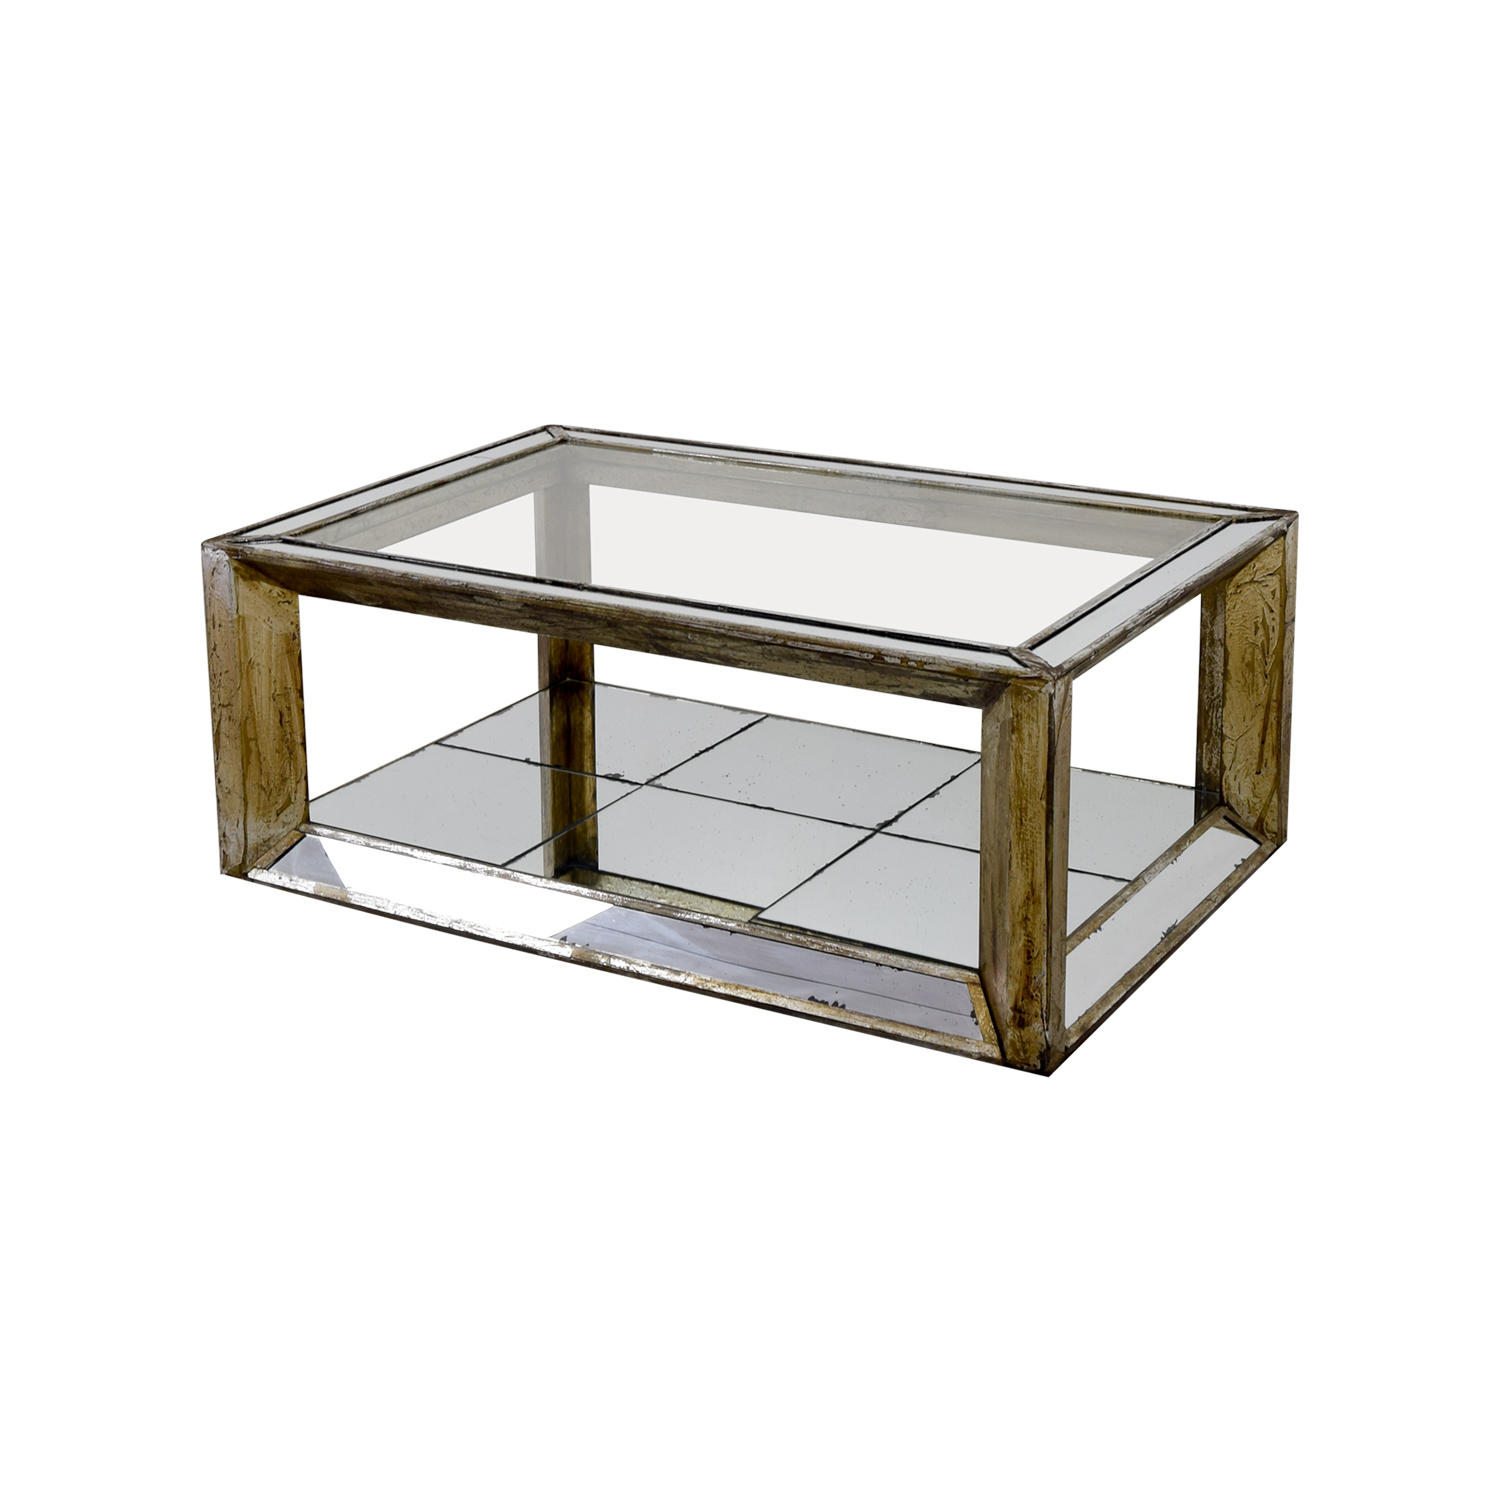 Houston Furniture Houston Furniture Mirror and Glass Coffee Table price